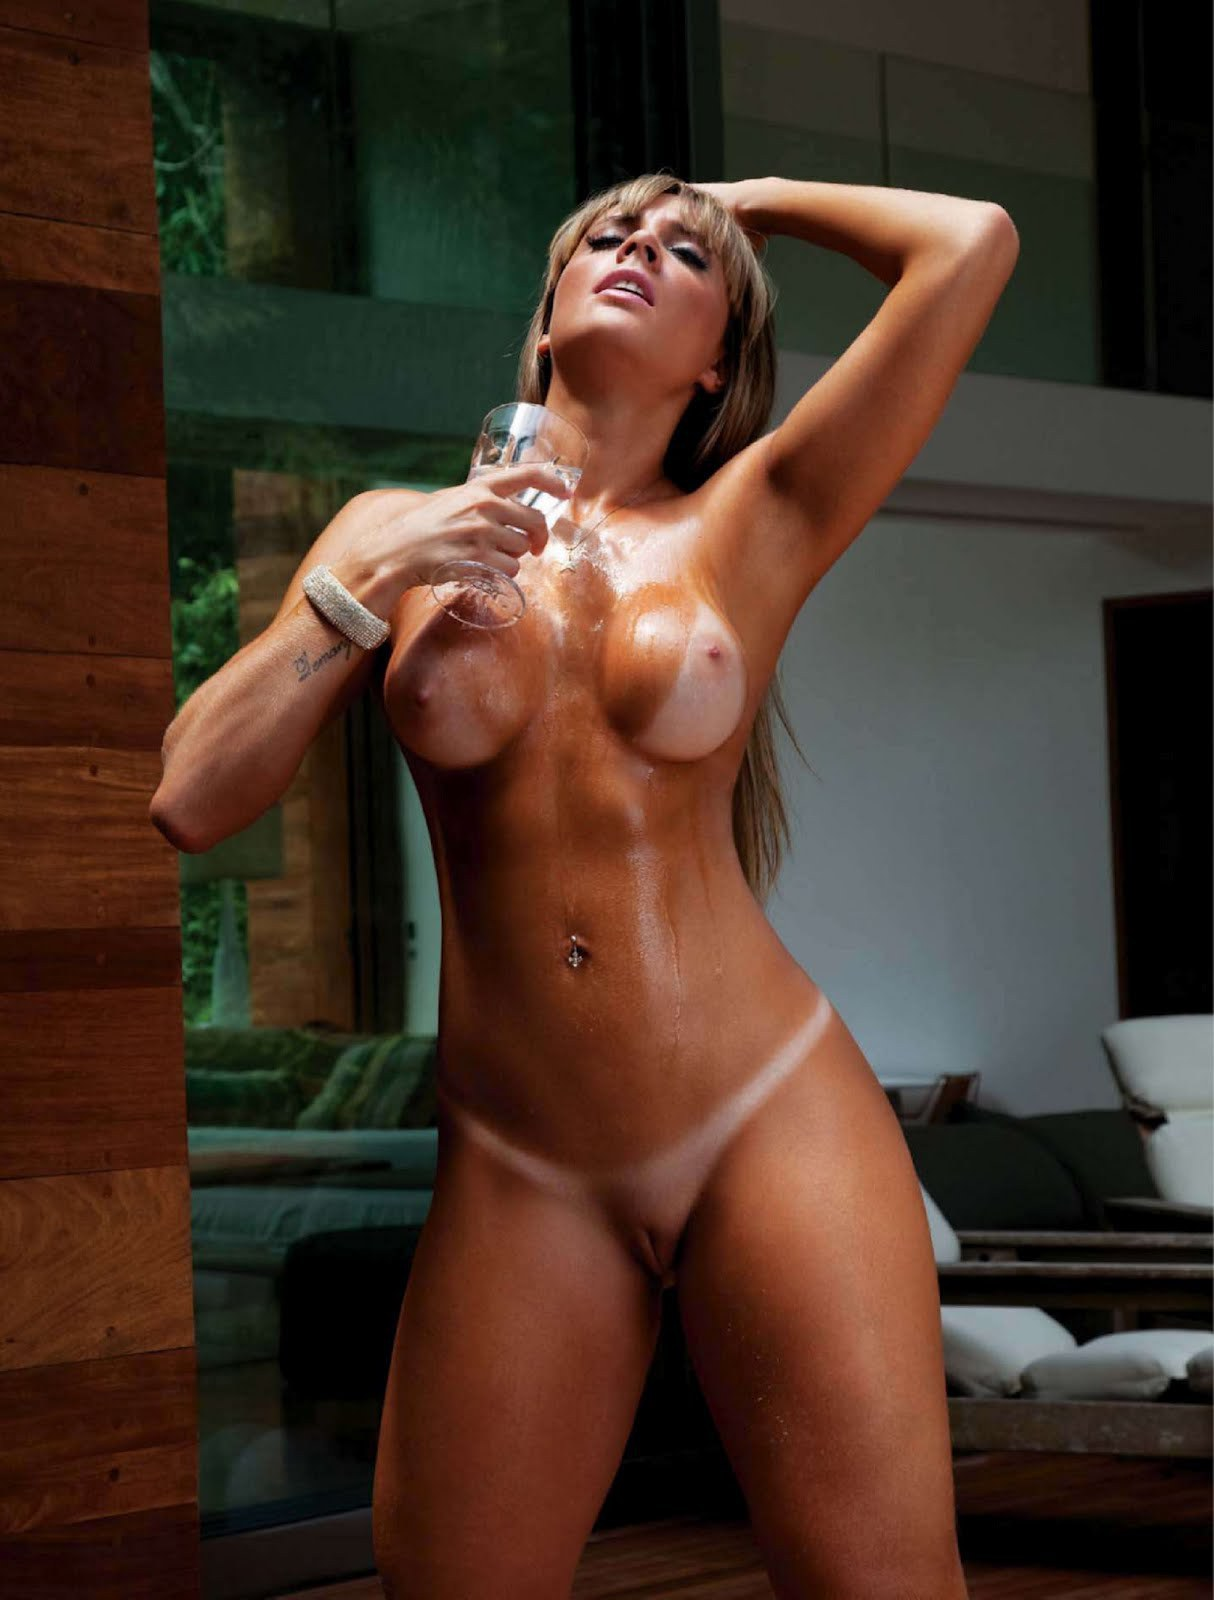 Nude Latina Fullfrontal Tits Pussy Shave